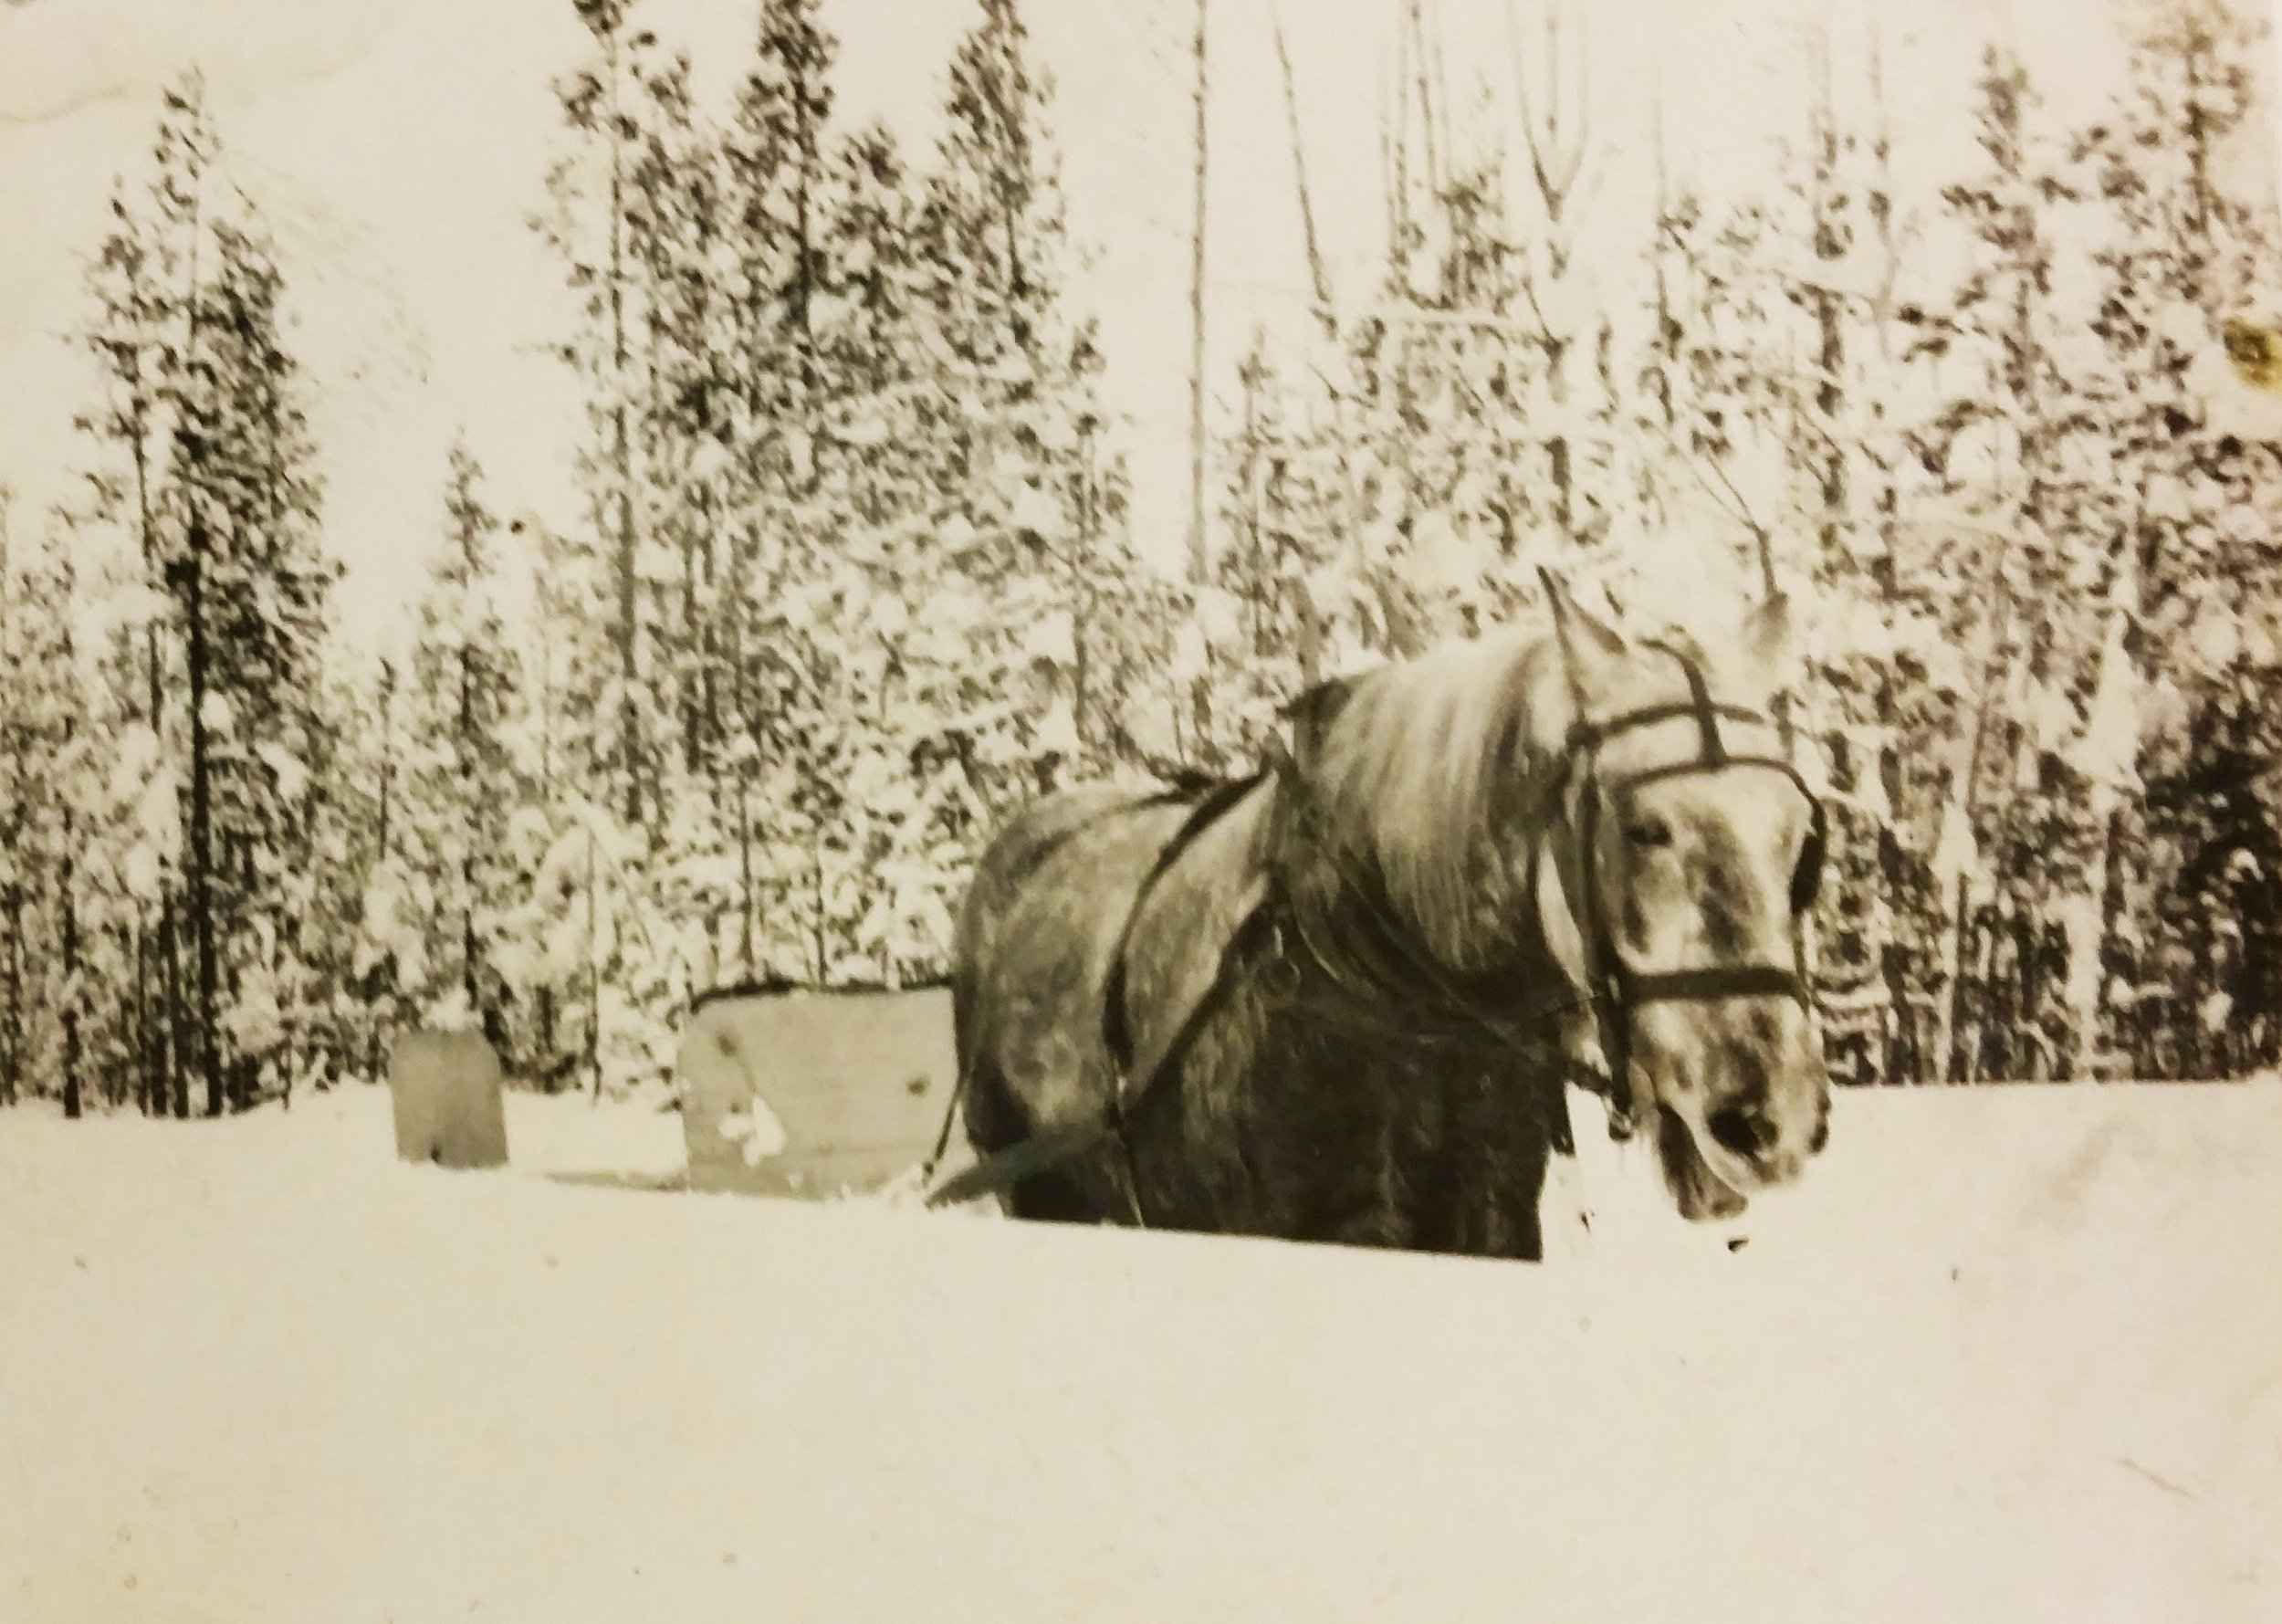 Horse making its way through deep snow. Yellowstone Historic Center Collections.